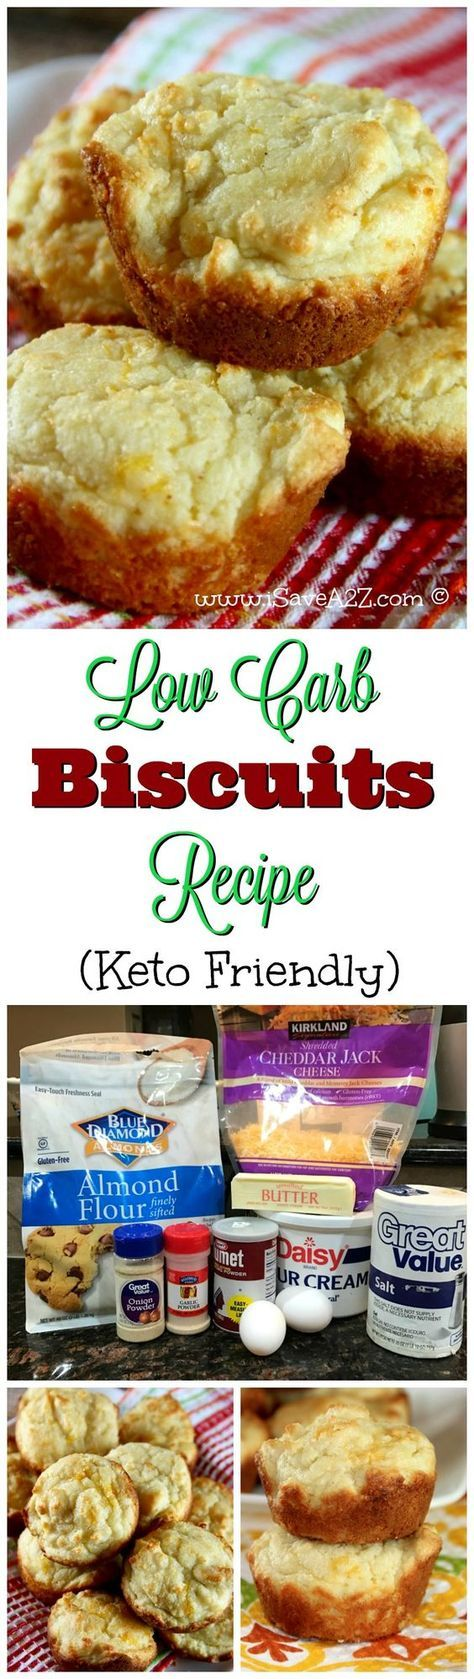 Low Carb Biscuits Recipe (Keto Friendly)